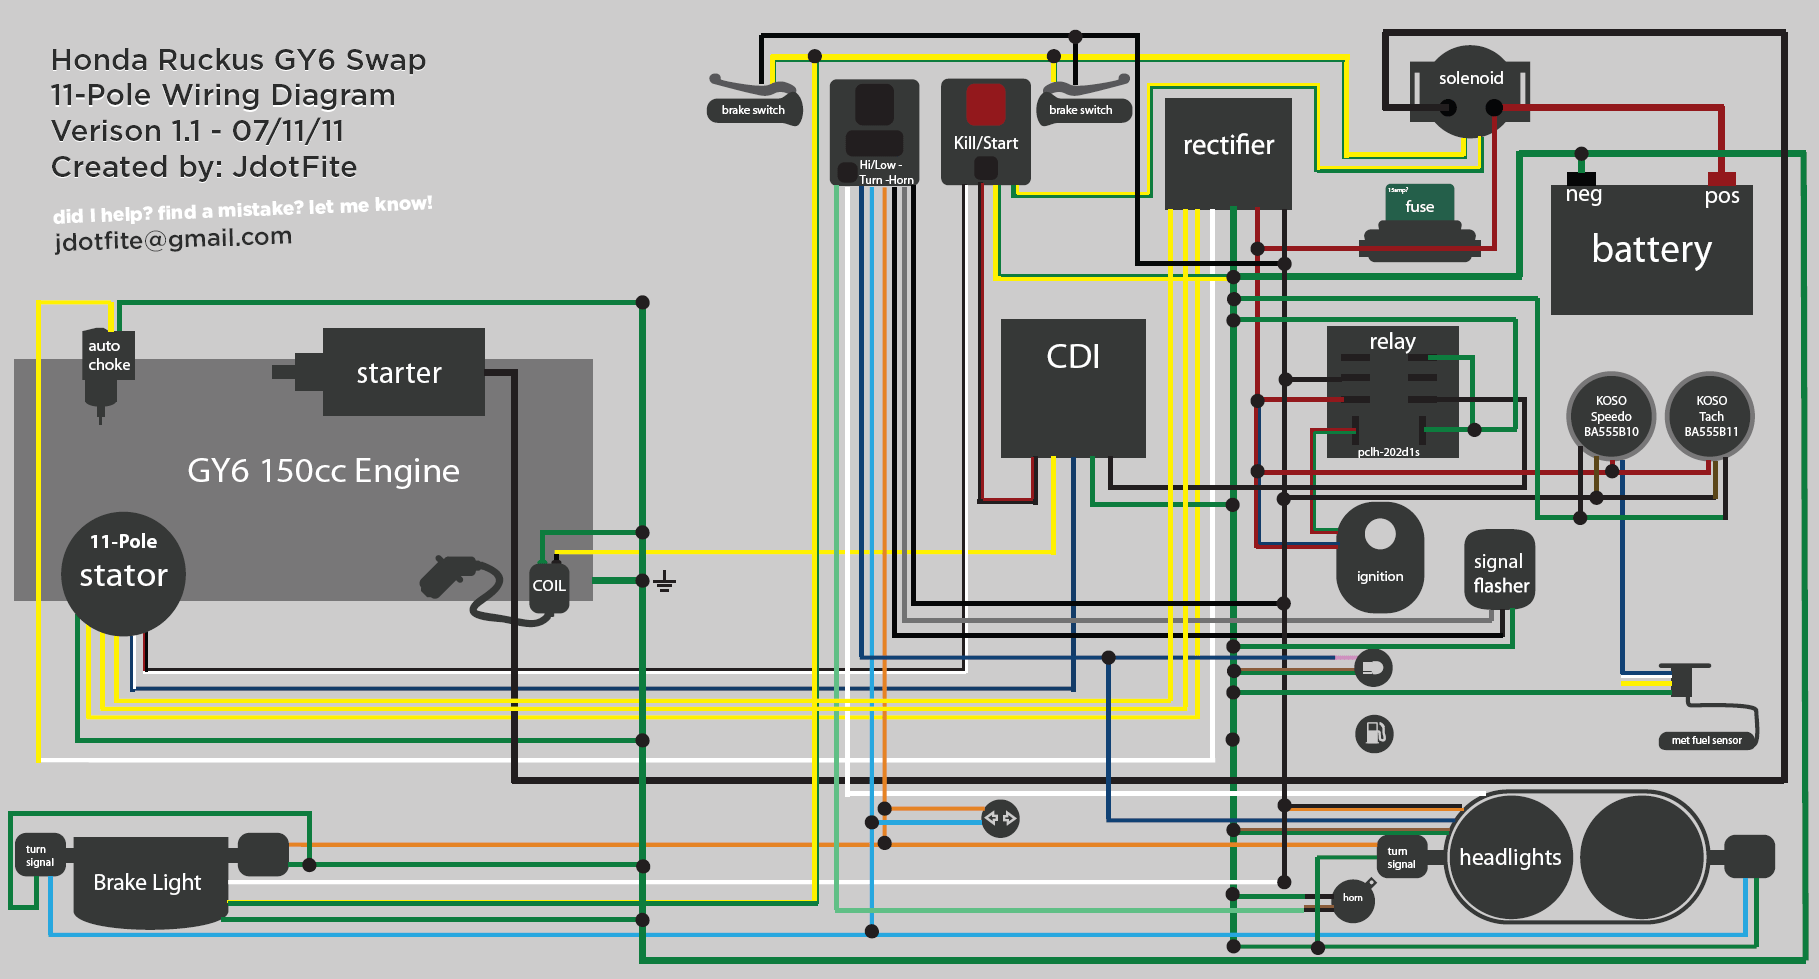 ruckus gy6 wiring diagram ruckus gy6 swap wiring diagram honda ruckus documentation Chevy Fuel Pump Wiring Harness at virtualis.co